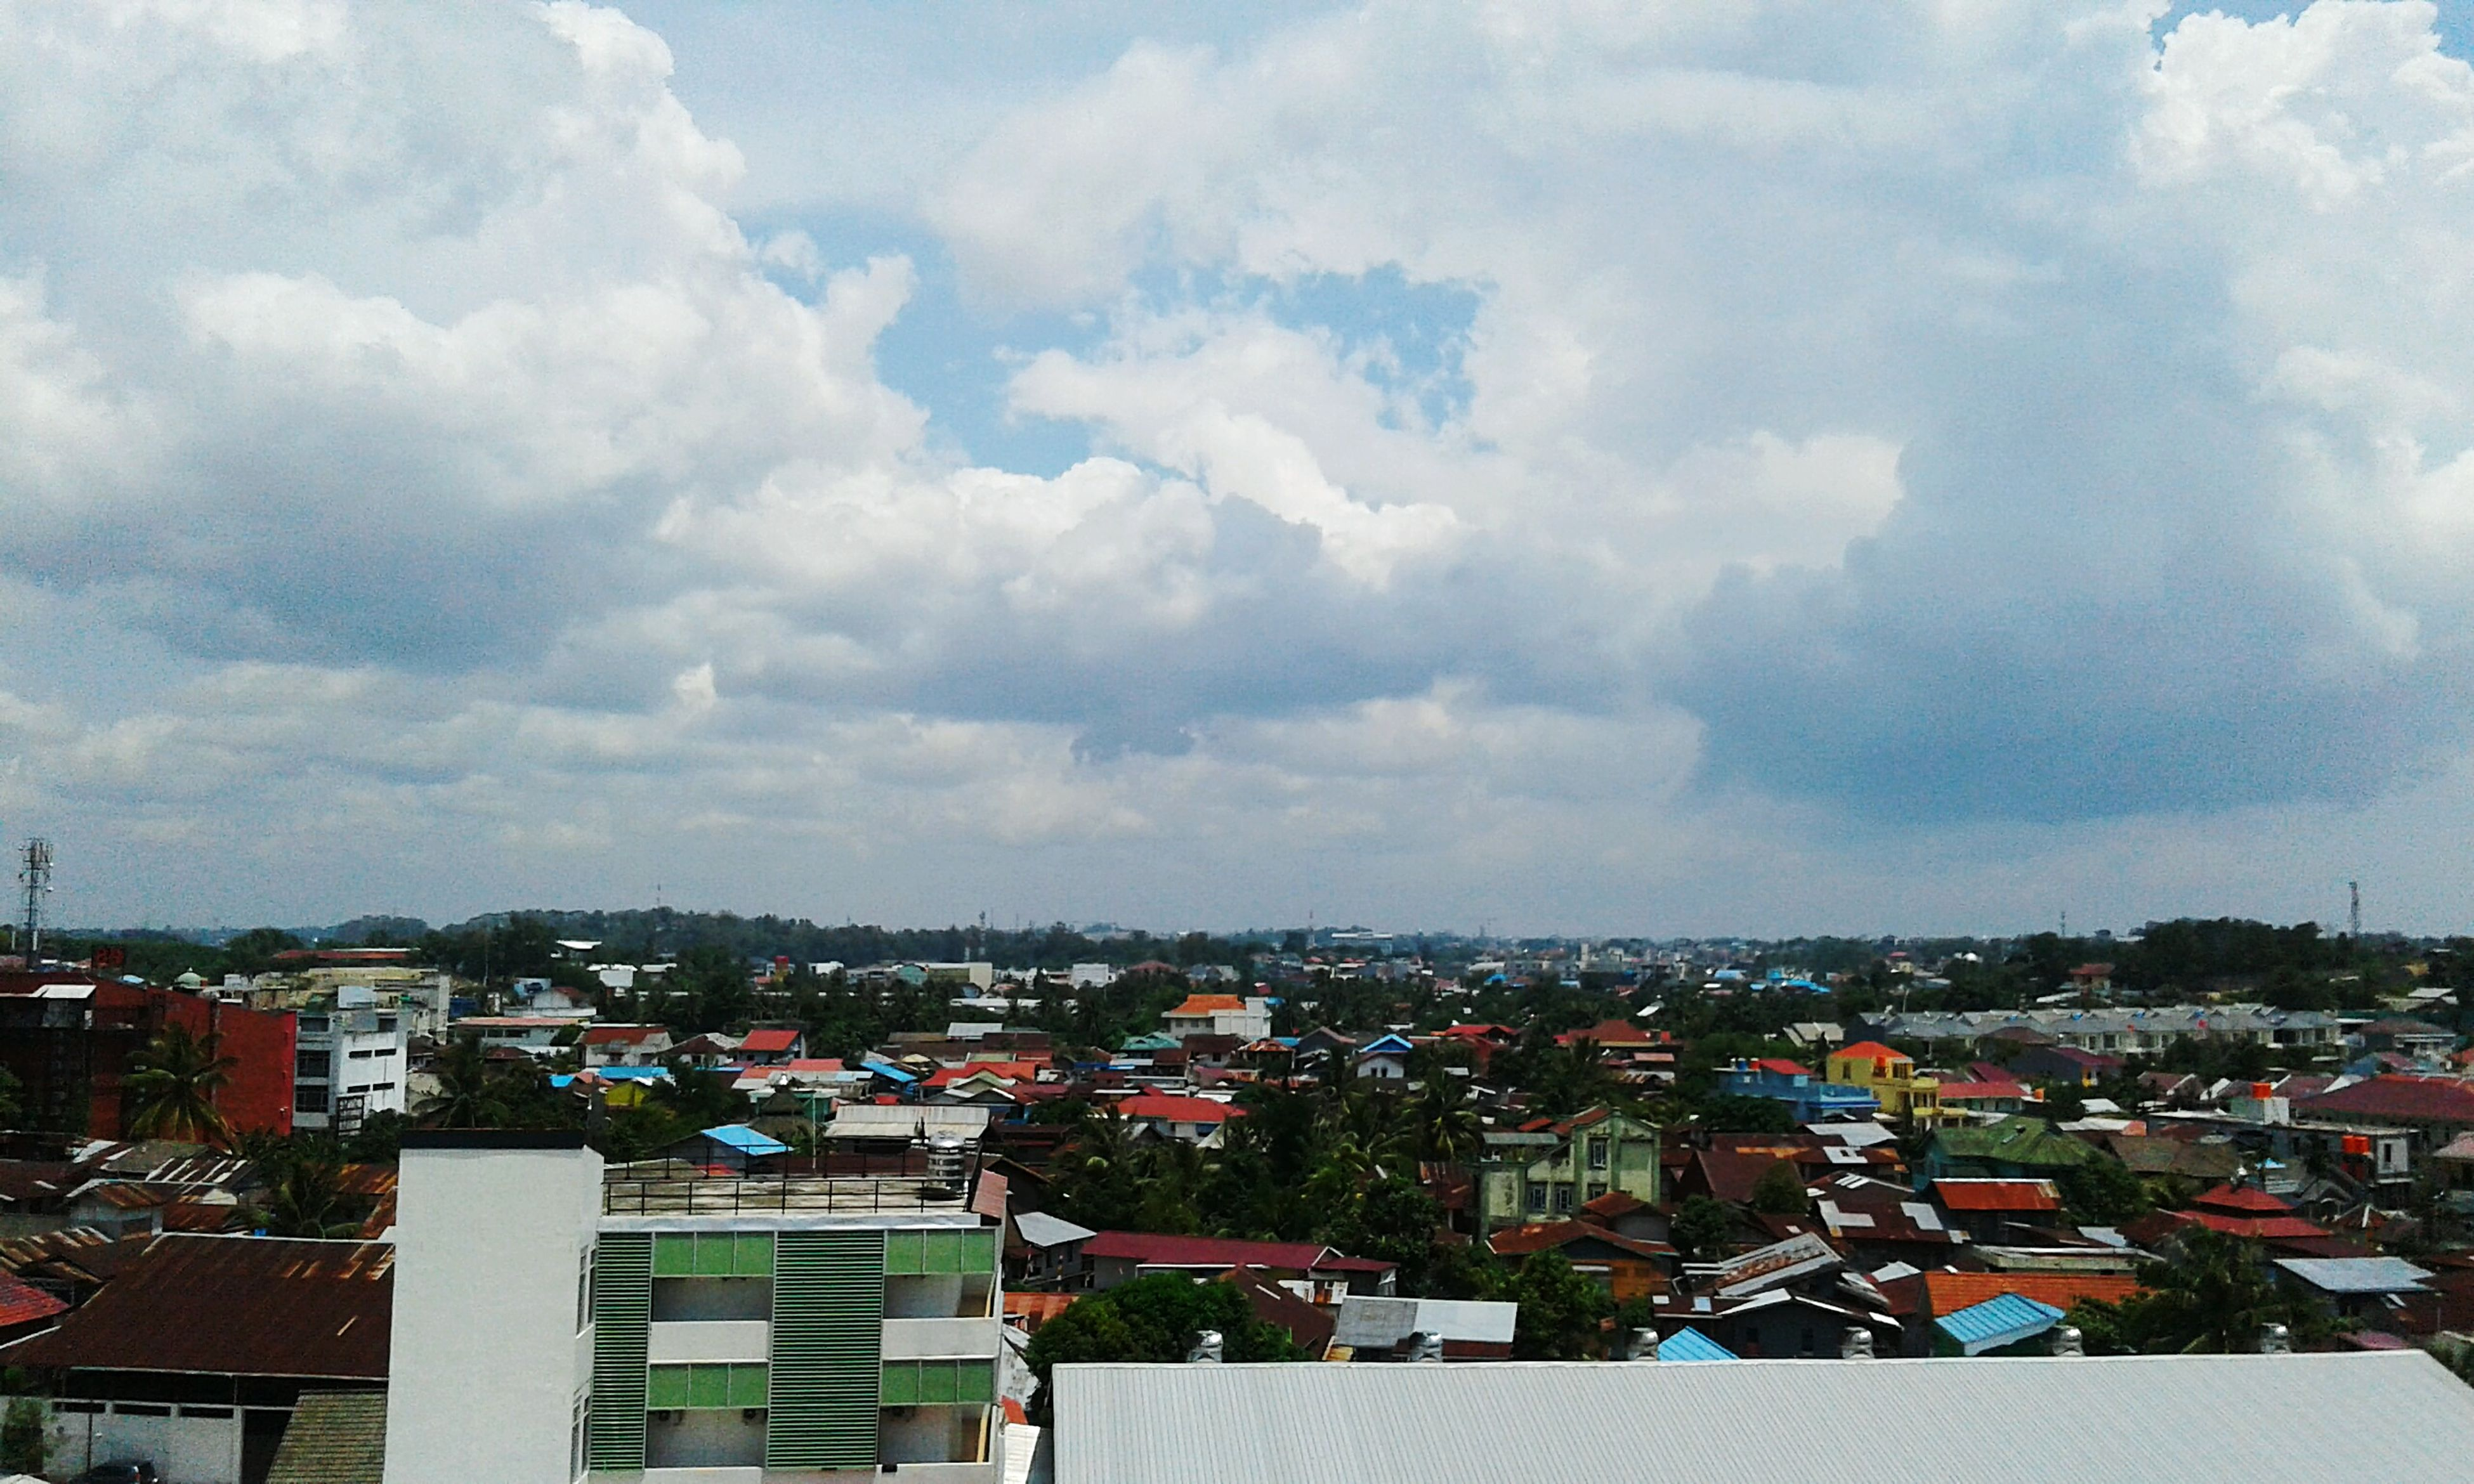 building exterior, architecture, built structure, cityscape, city, sky, crowded, cloud - sky, residential district, residential building, residential structure, cloudy, high angle view, cloud, house, community, human settlement, outdoors, city life, town